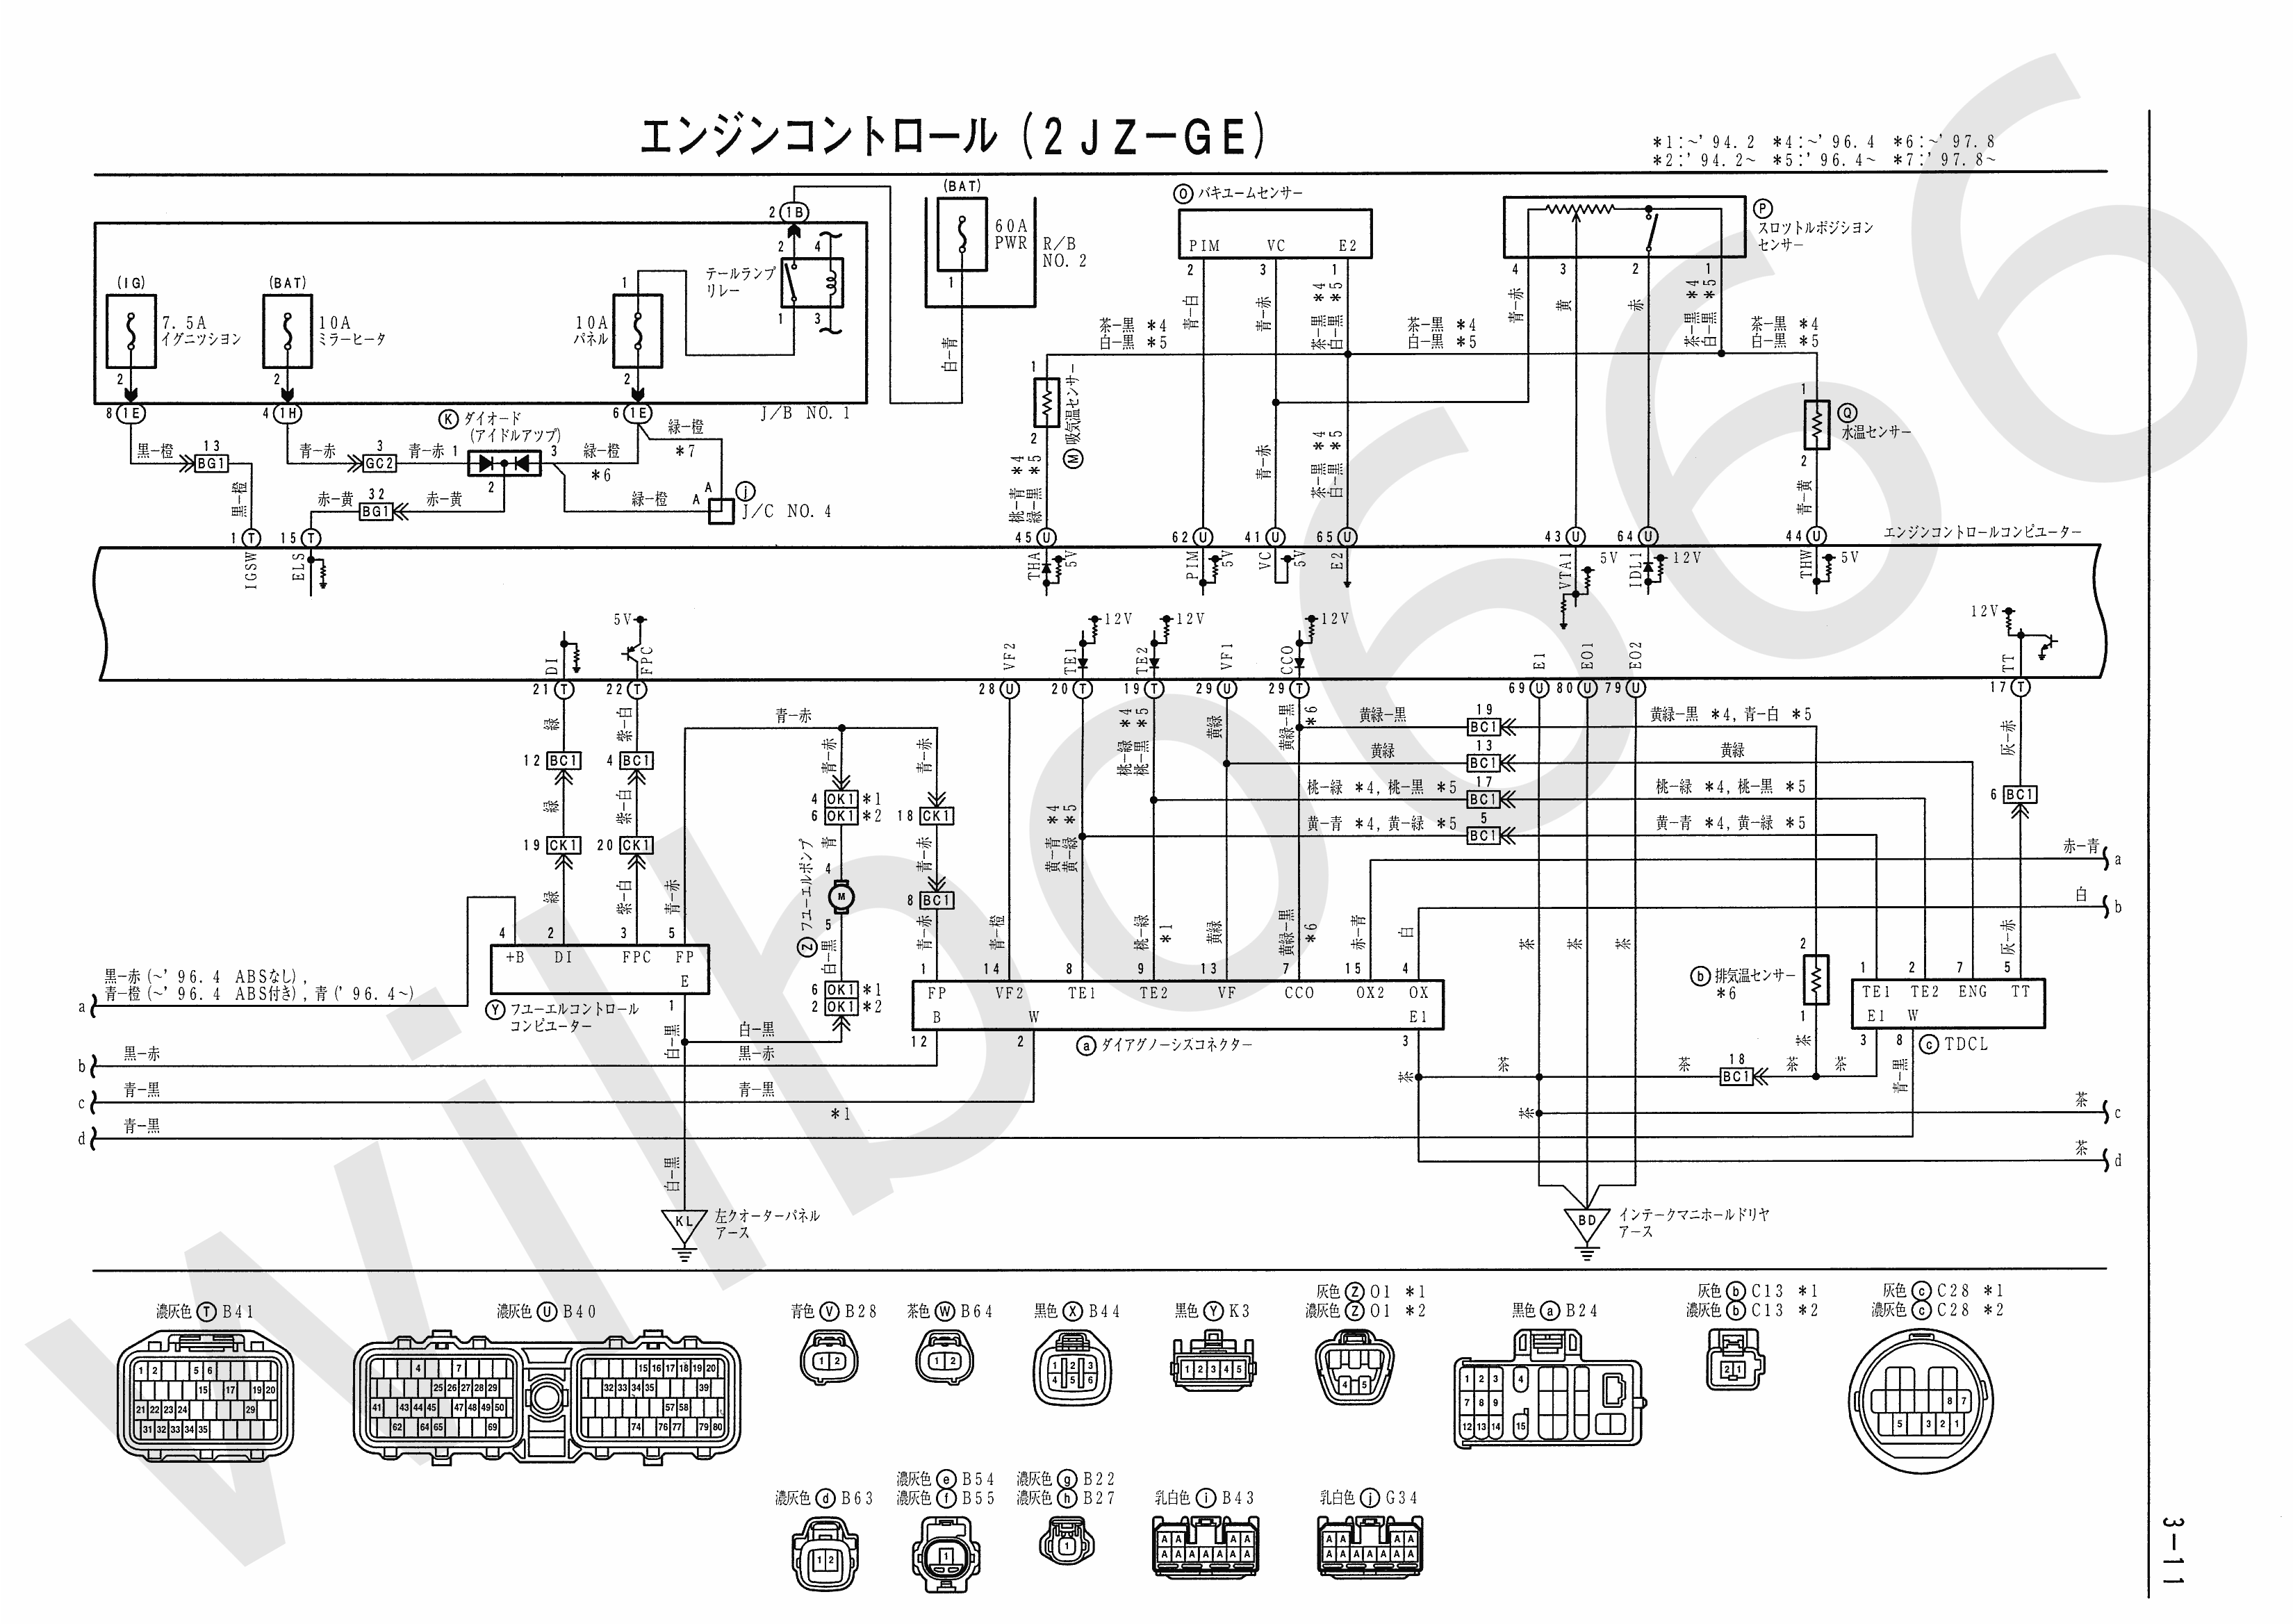 jensen vm9214 wiring diagram jensen image wiring ge engine diagram ge automotive wiring diagrams on jensen vm9214 wiring diagram